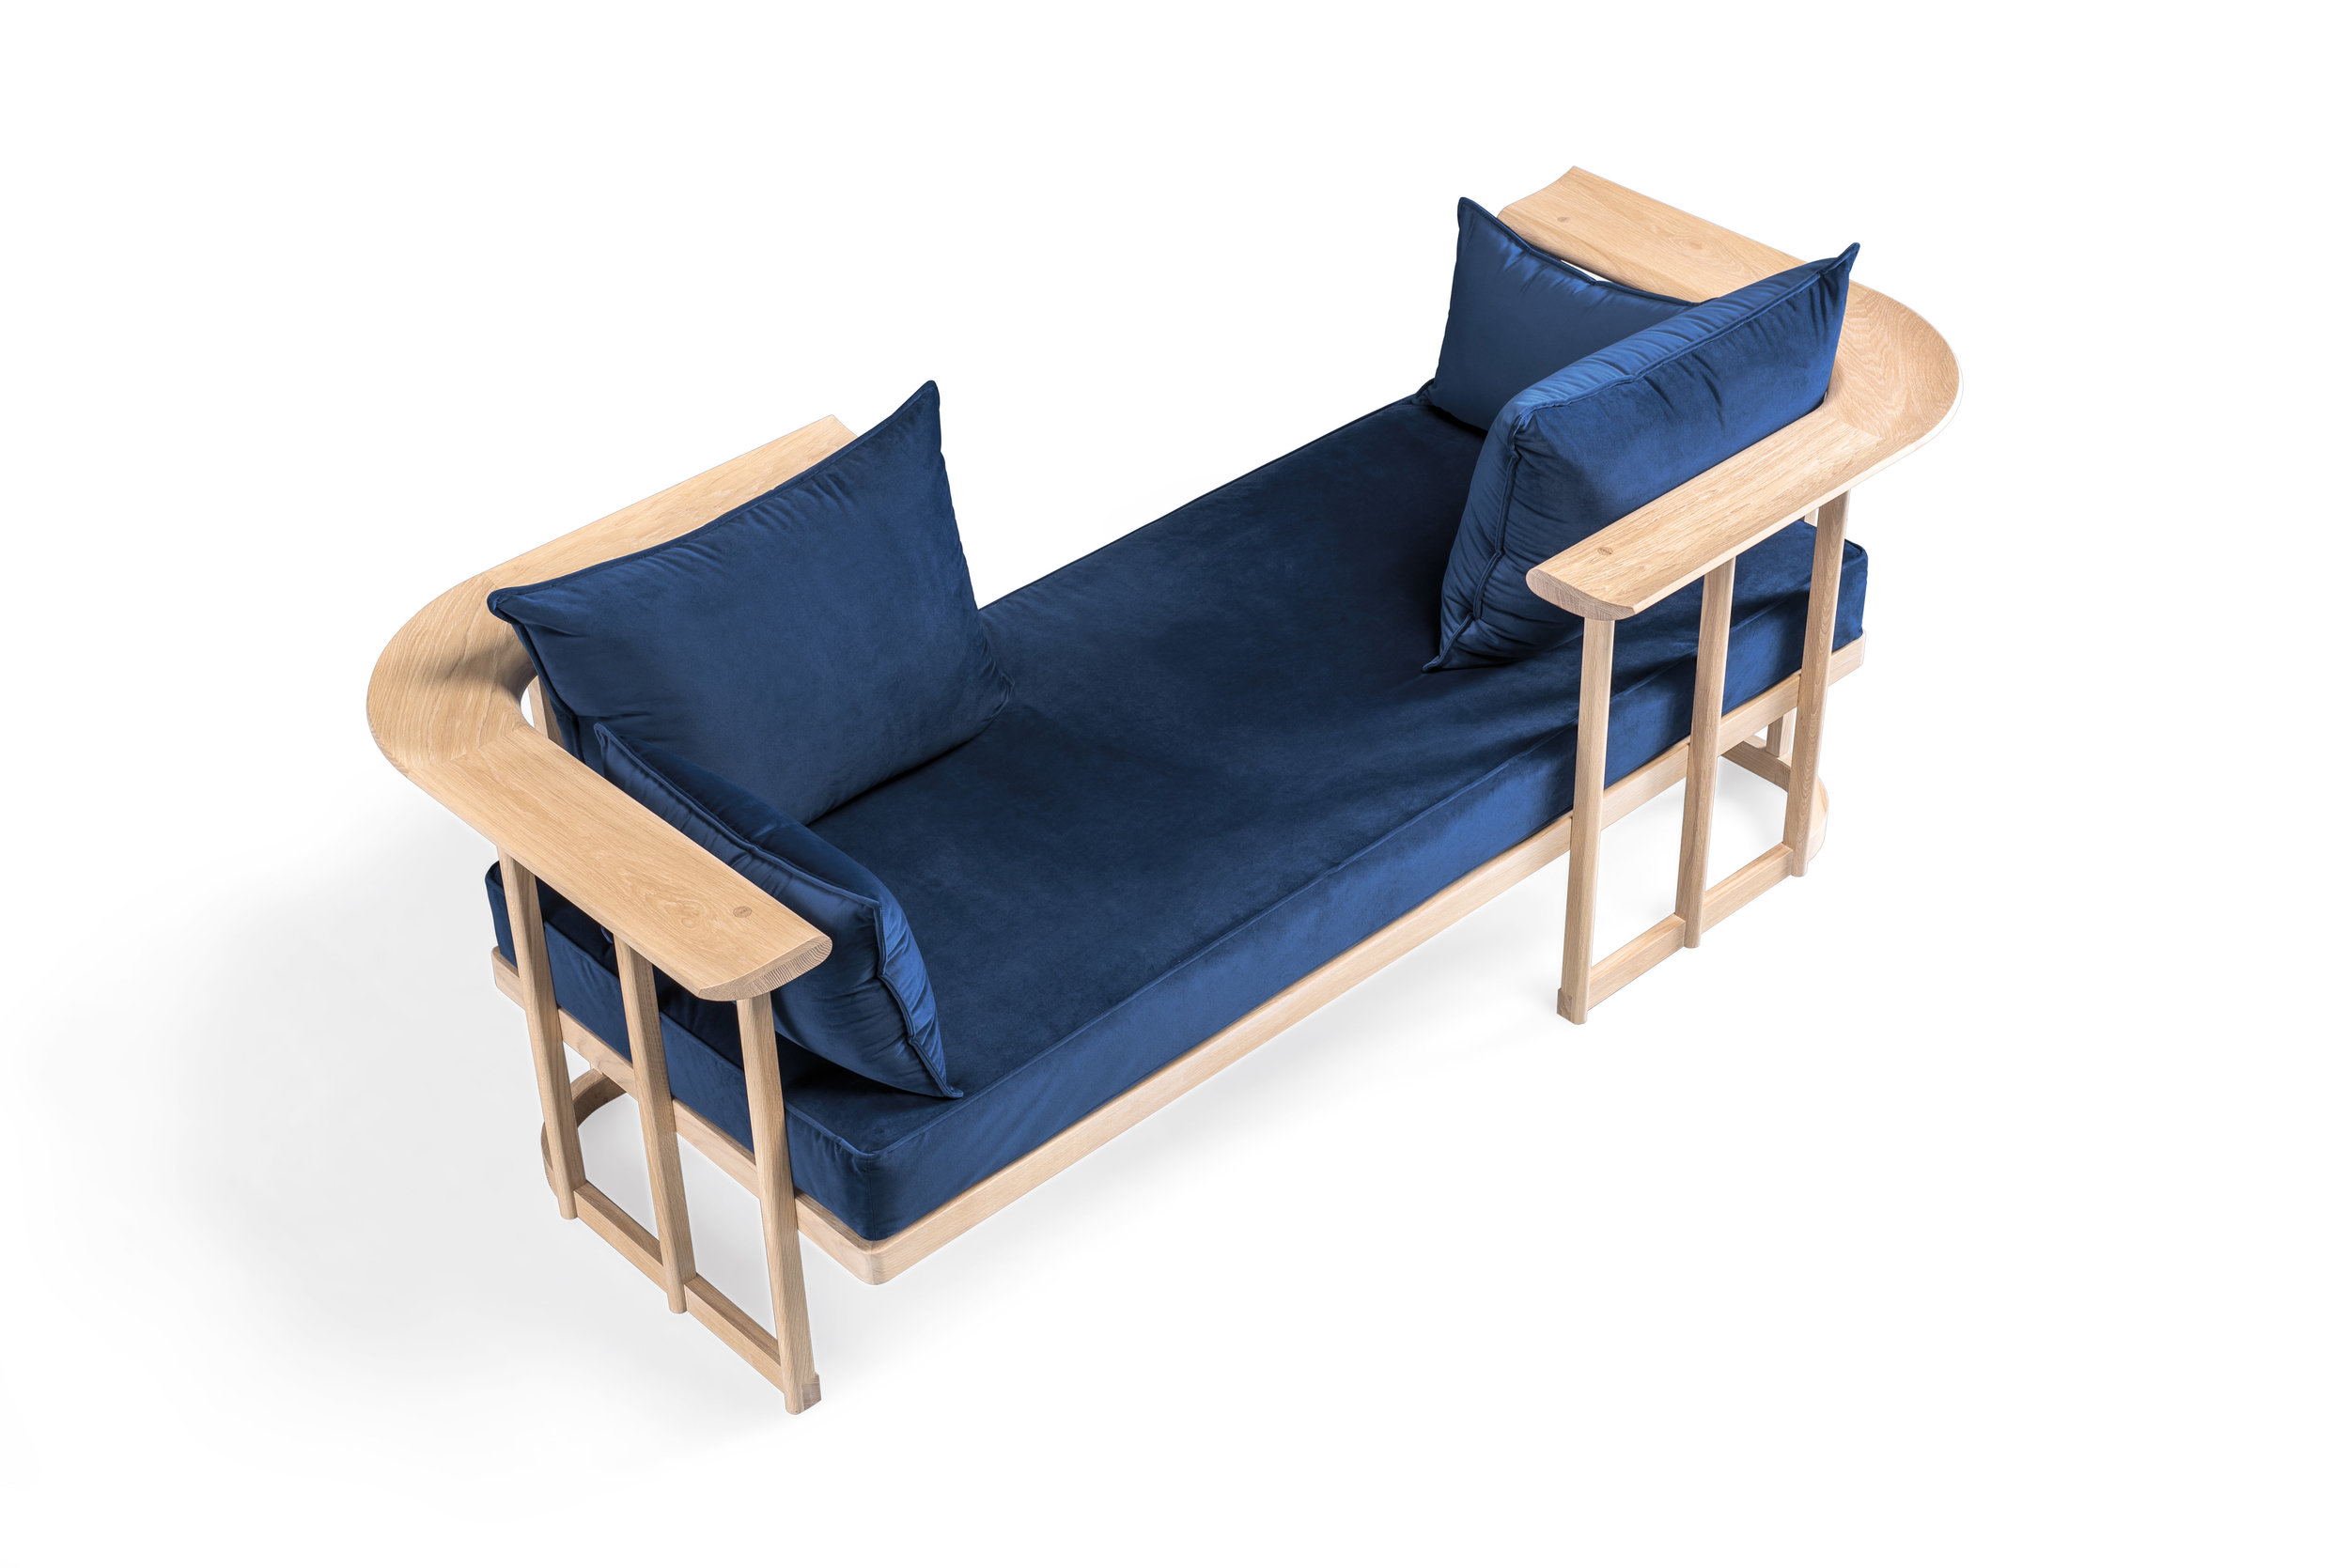 1. LOVER SEAT BY WEWOOD   You'll get people talking with a seat like this.   LOVER   seat allows to interchange the parts and can be used as a chaise longue, a love seat, a sofa or a day bed.